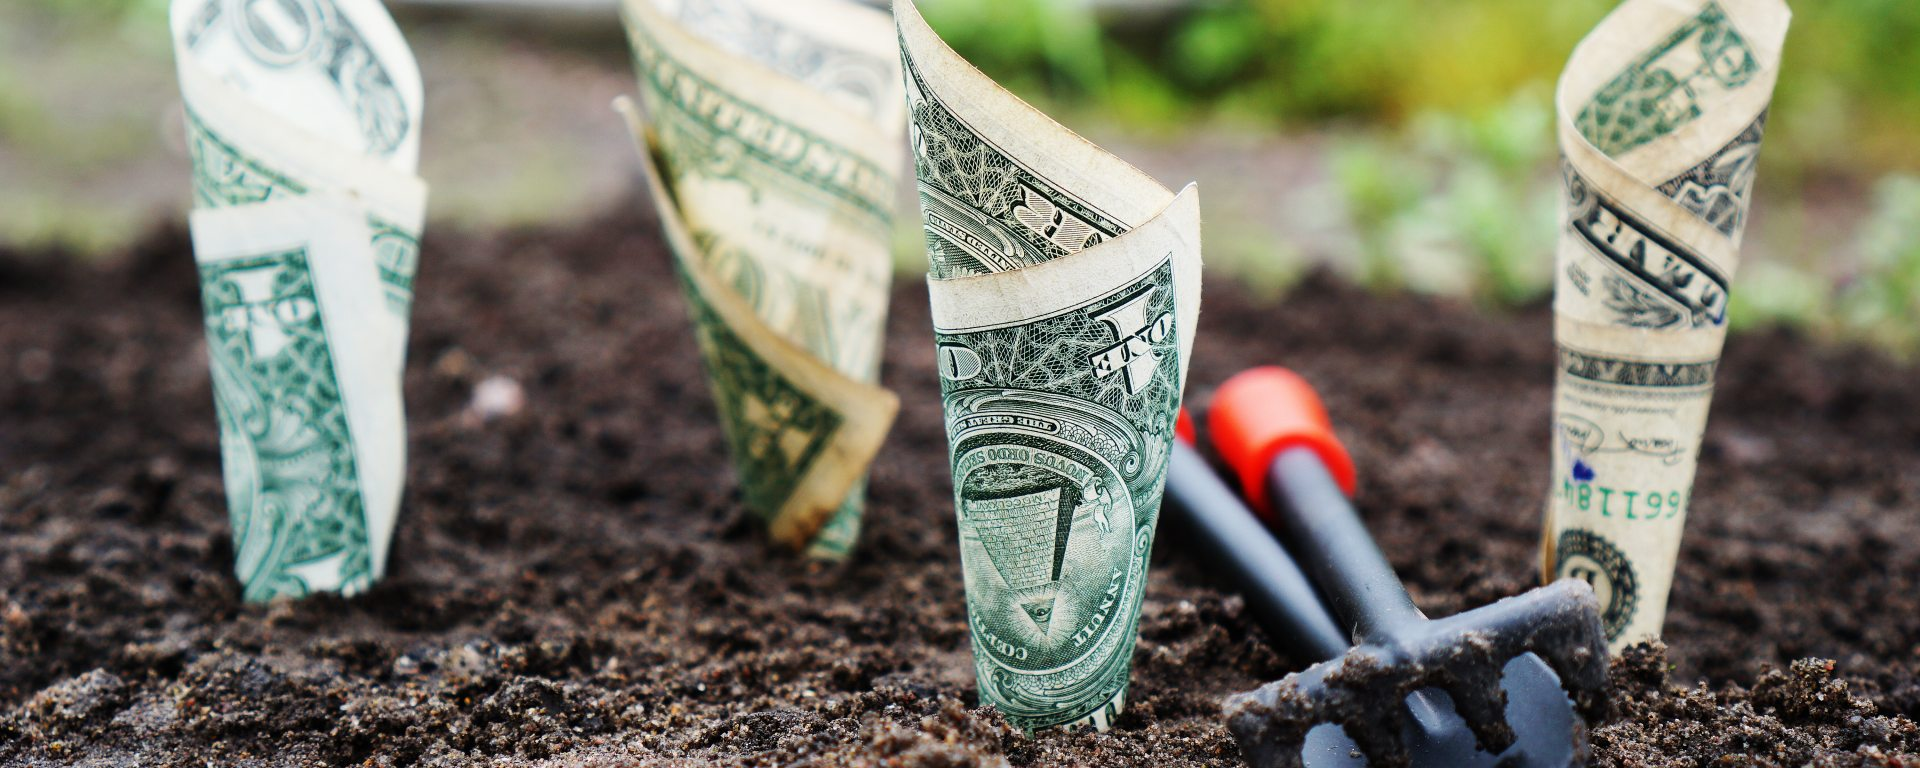 Dollar bills rolled up and planted in dirt like flowers.